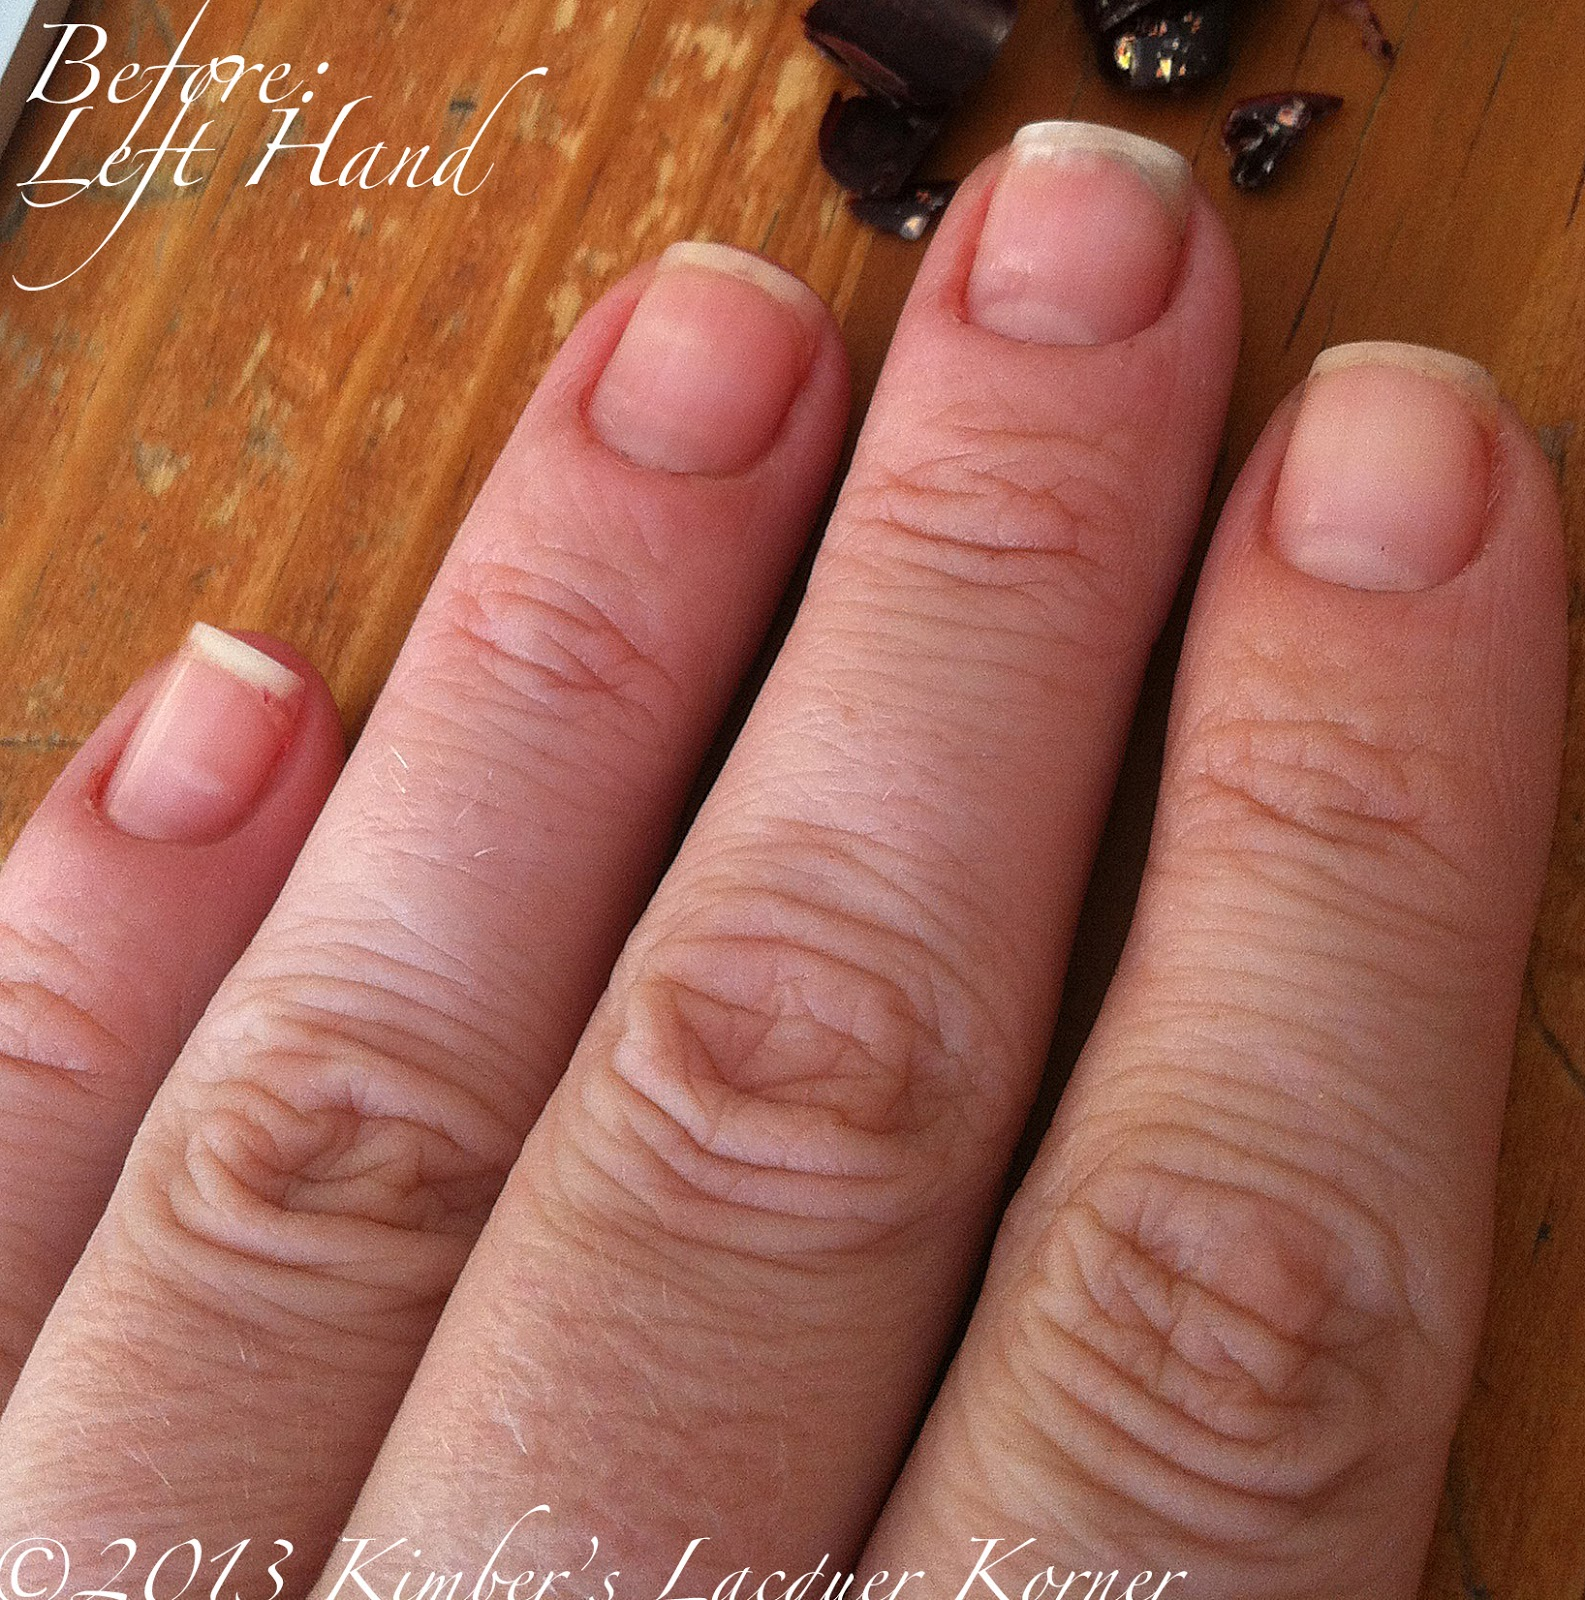 Makeup HD: Pure Nail Oil™ - The Big Reveal! Pic Heavy!